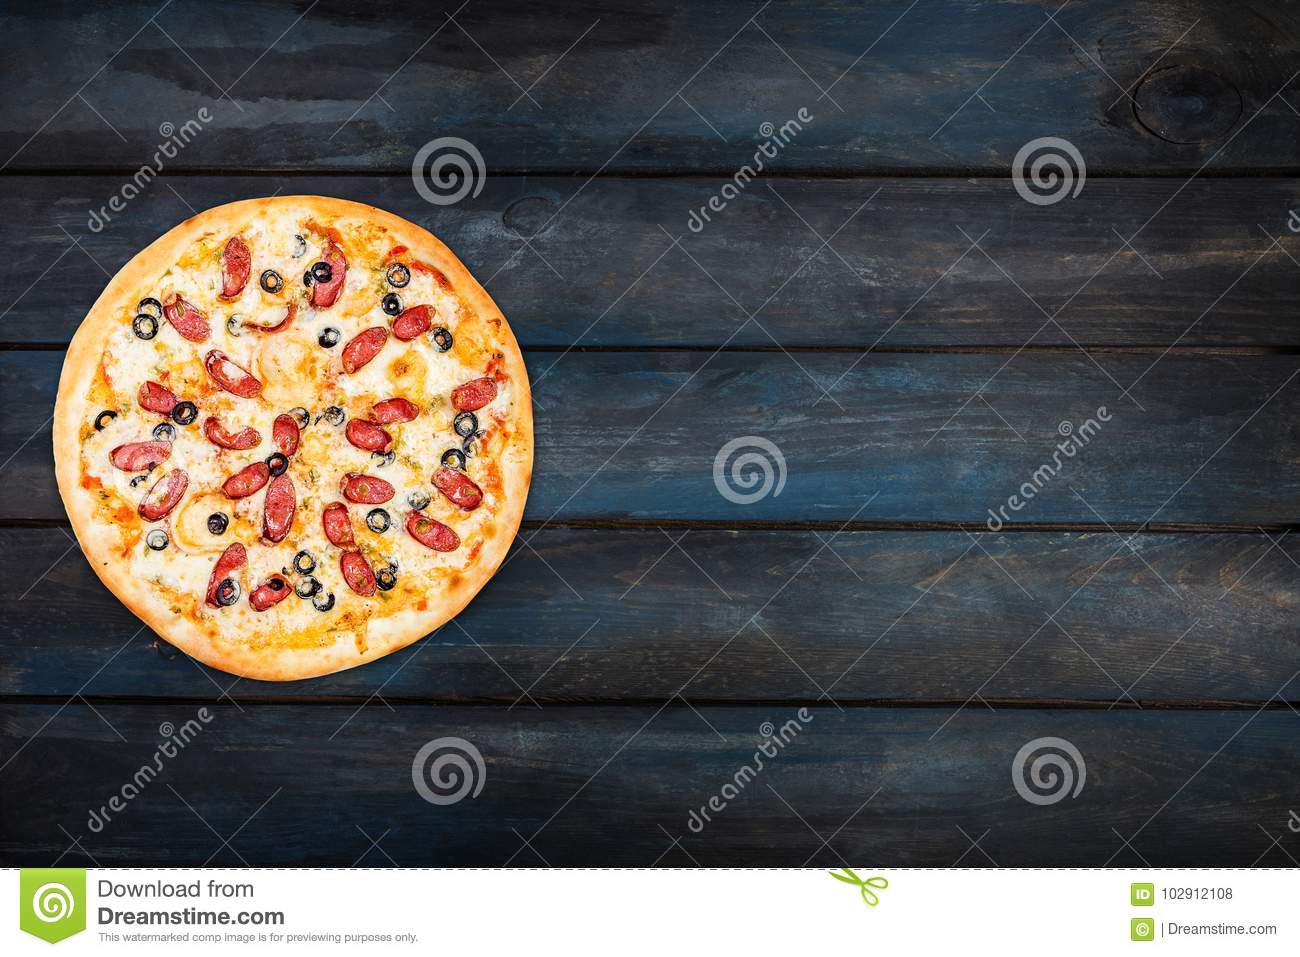 Delicious pizza with smoked sausage and olives on a dark wooden background. Top view orientation on the left side